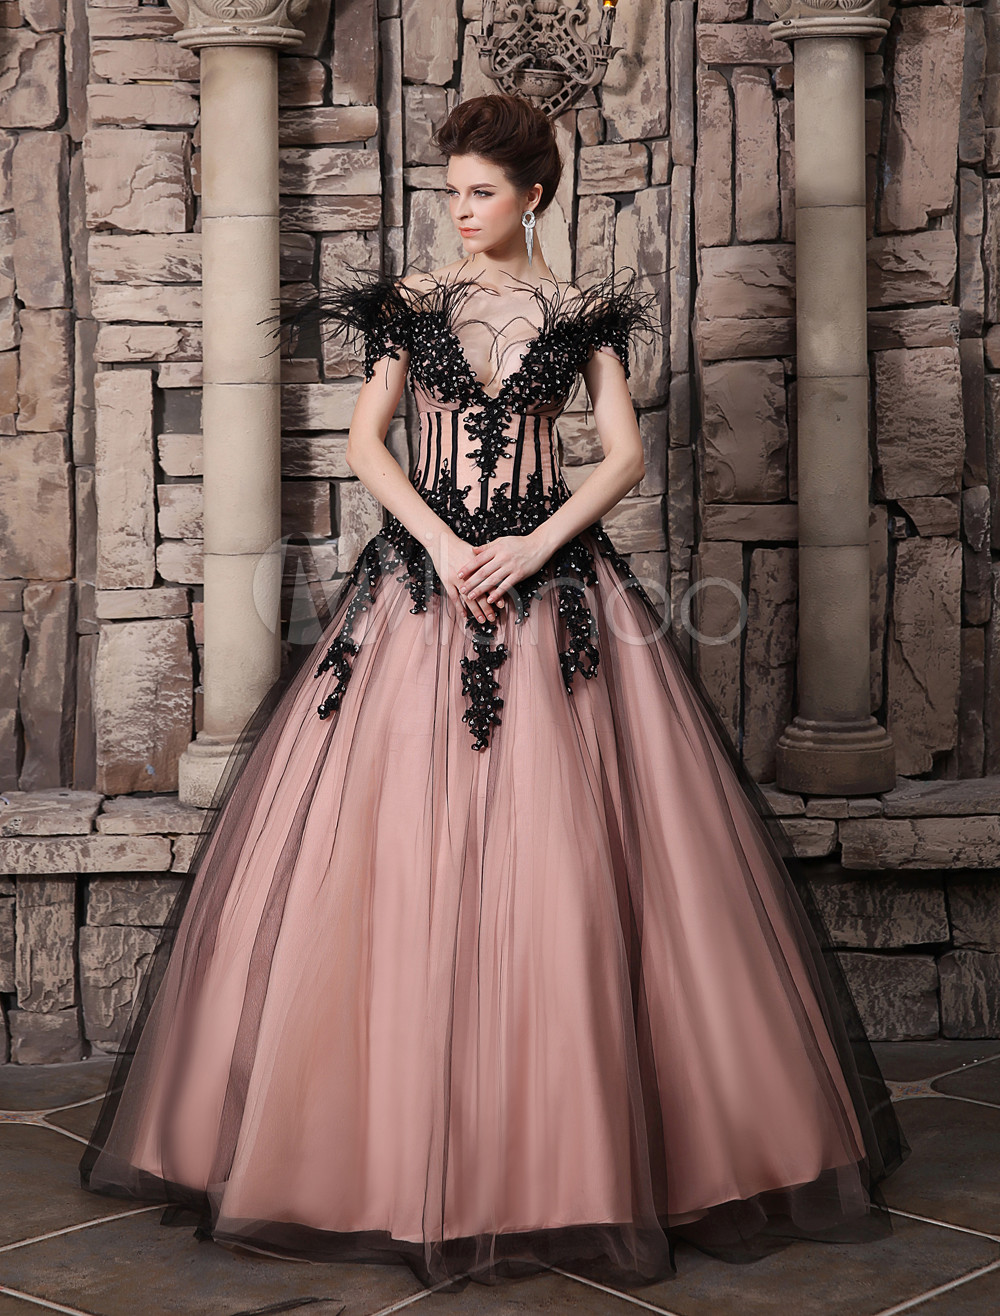 Blush Pink Evening Dress Ball Gown Off The Shoulder Quinceanera Dress Feather Lace Applique Party Dress   Milanoo